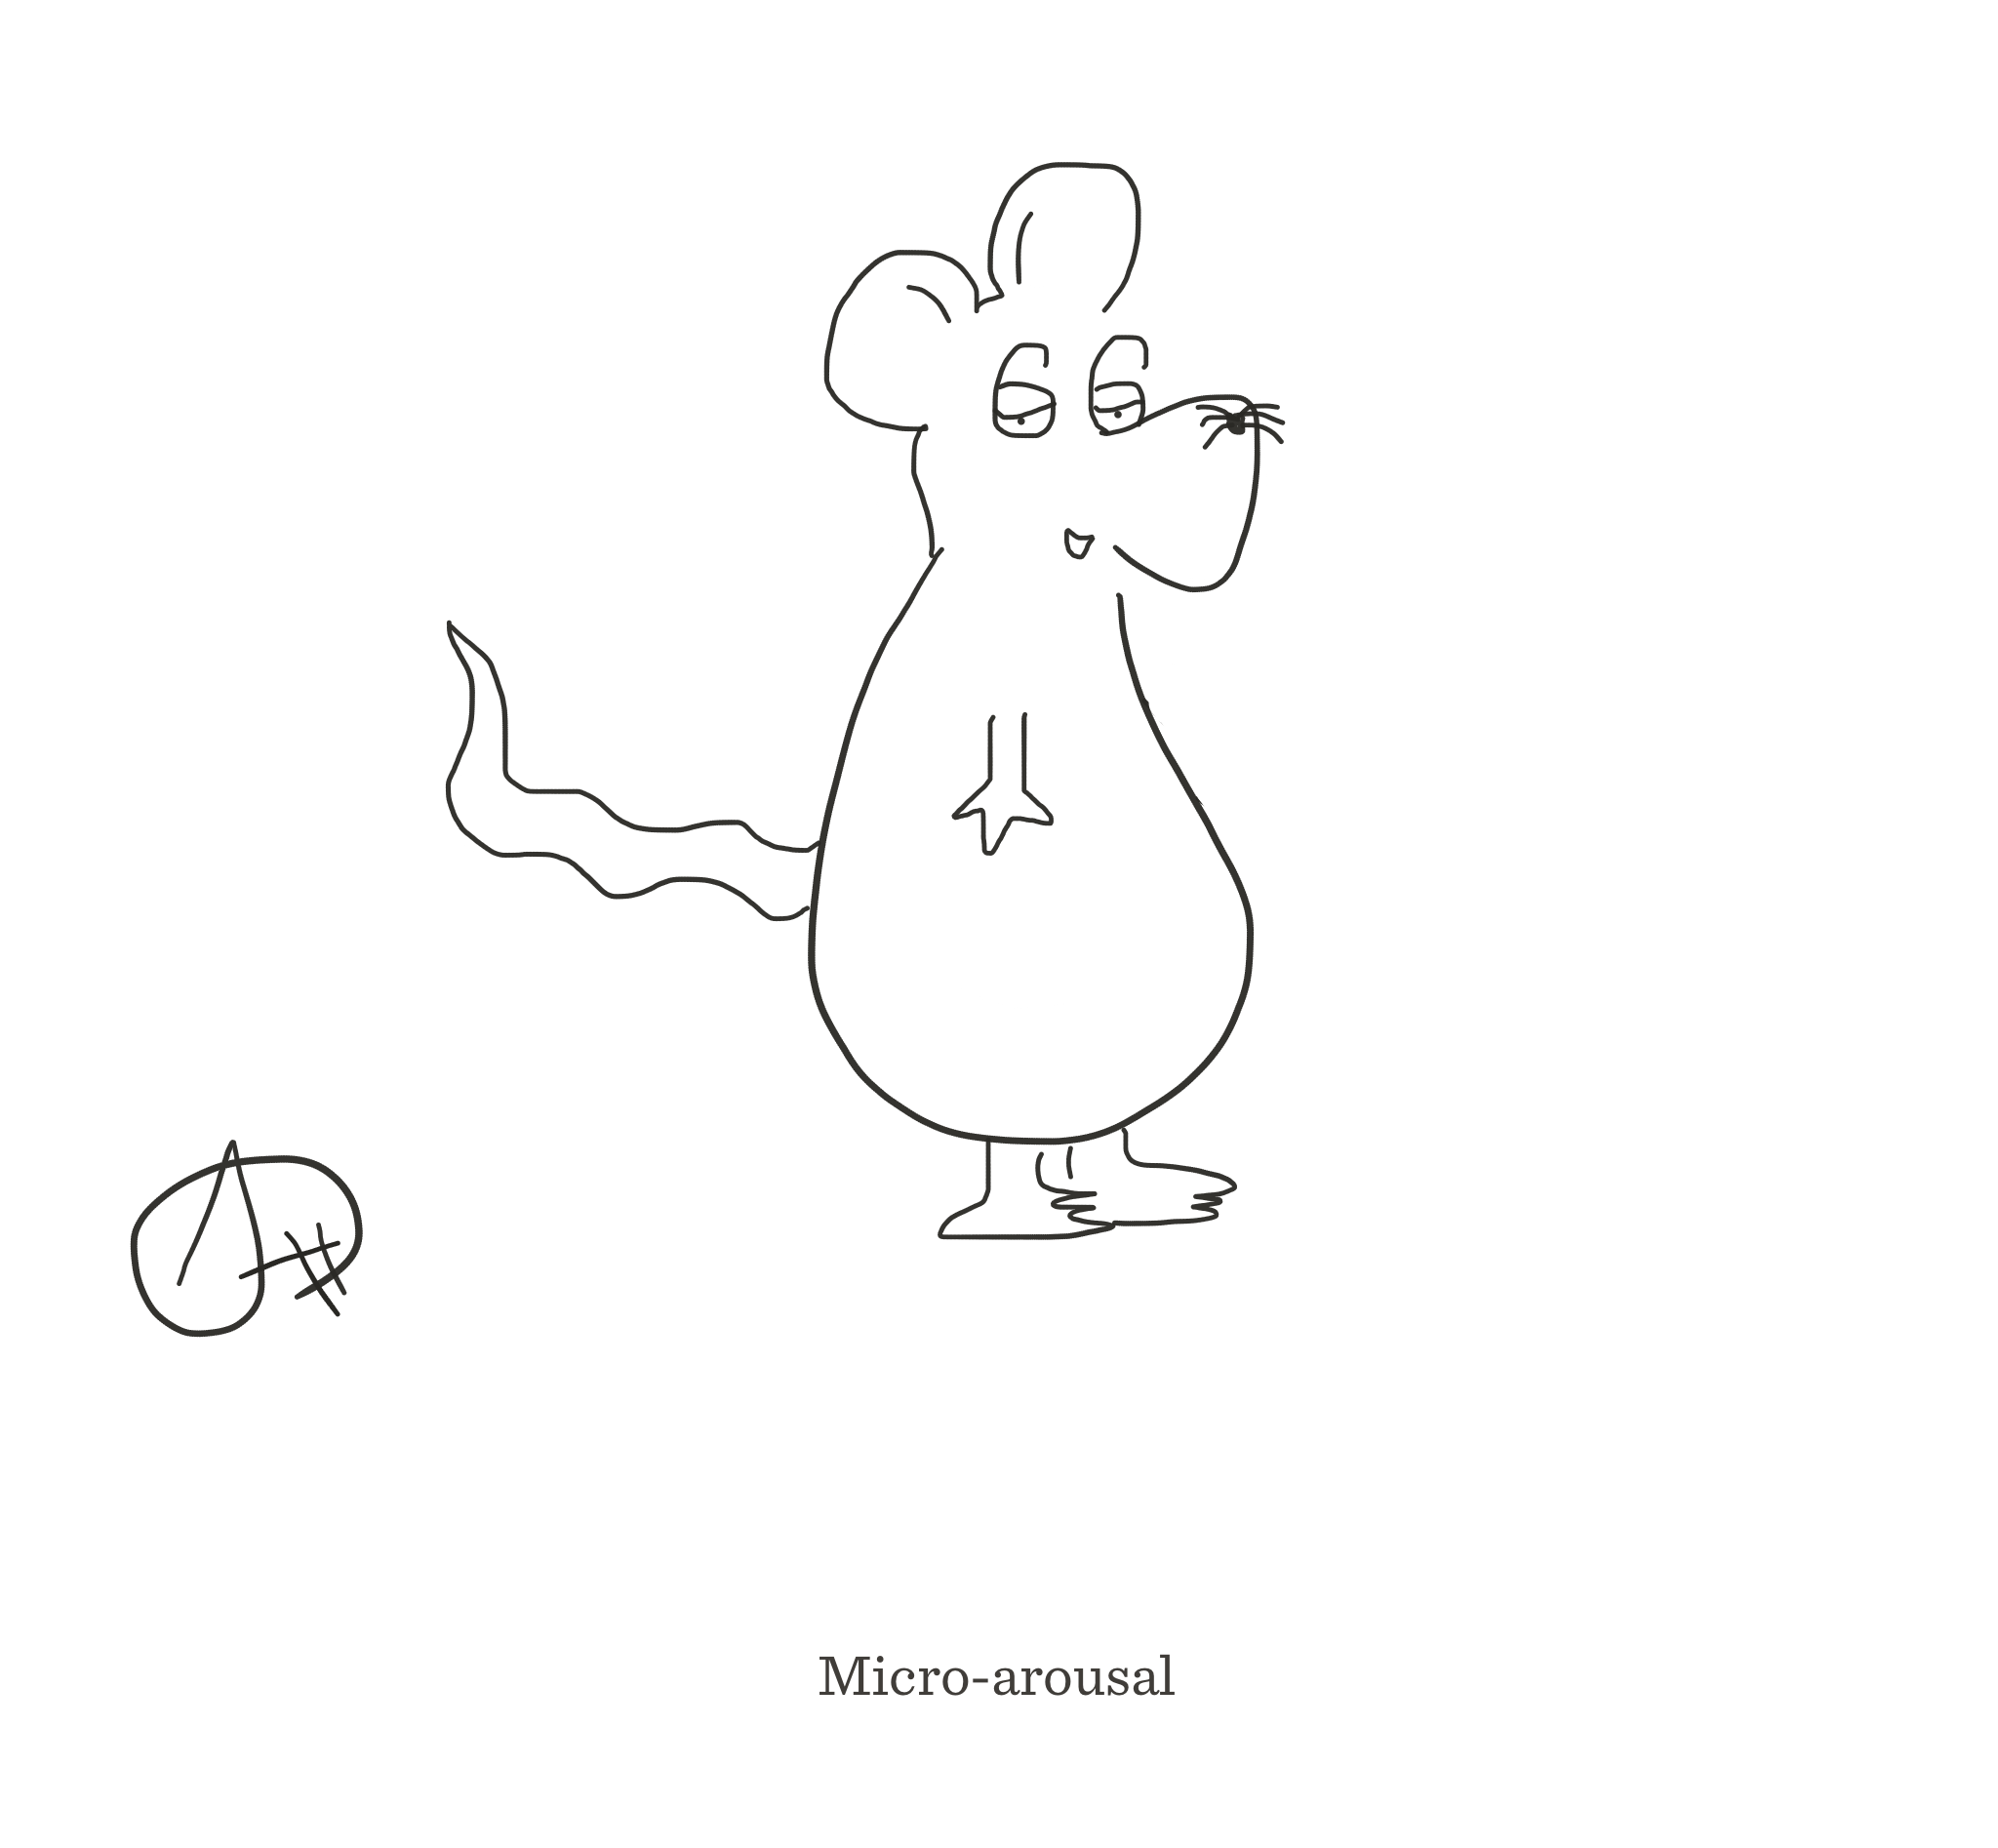 Micro-arousal, The Happy Rat cartoon